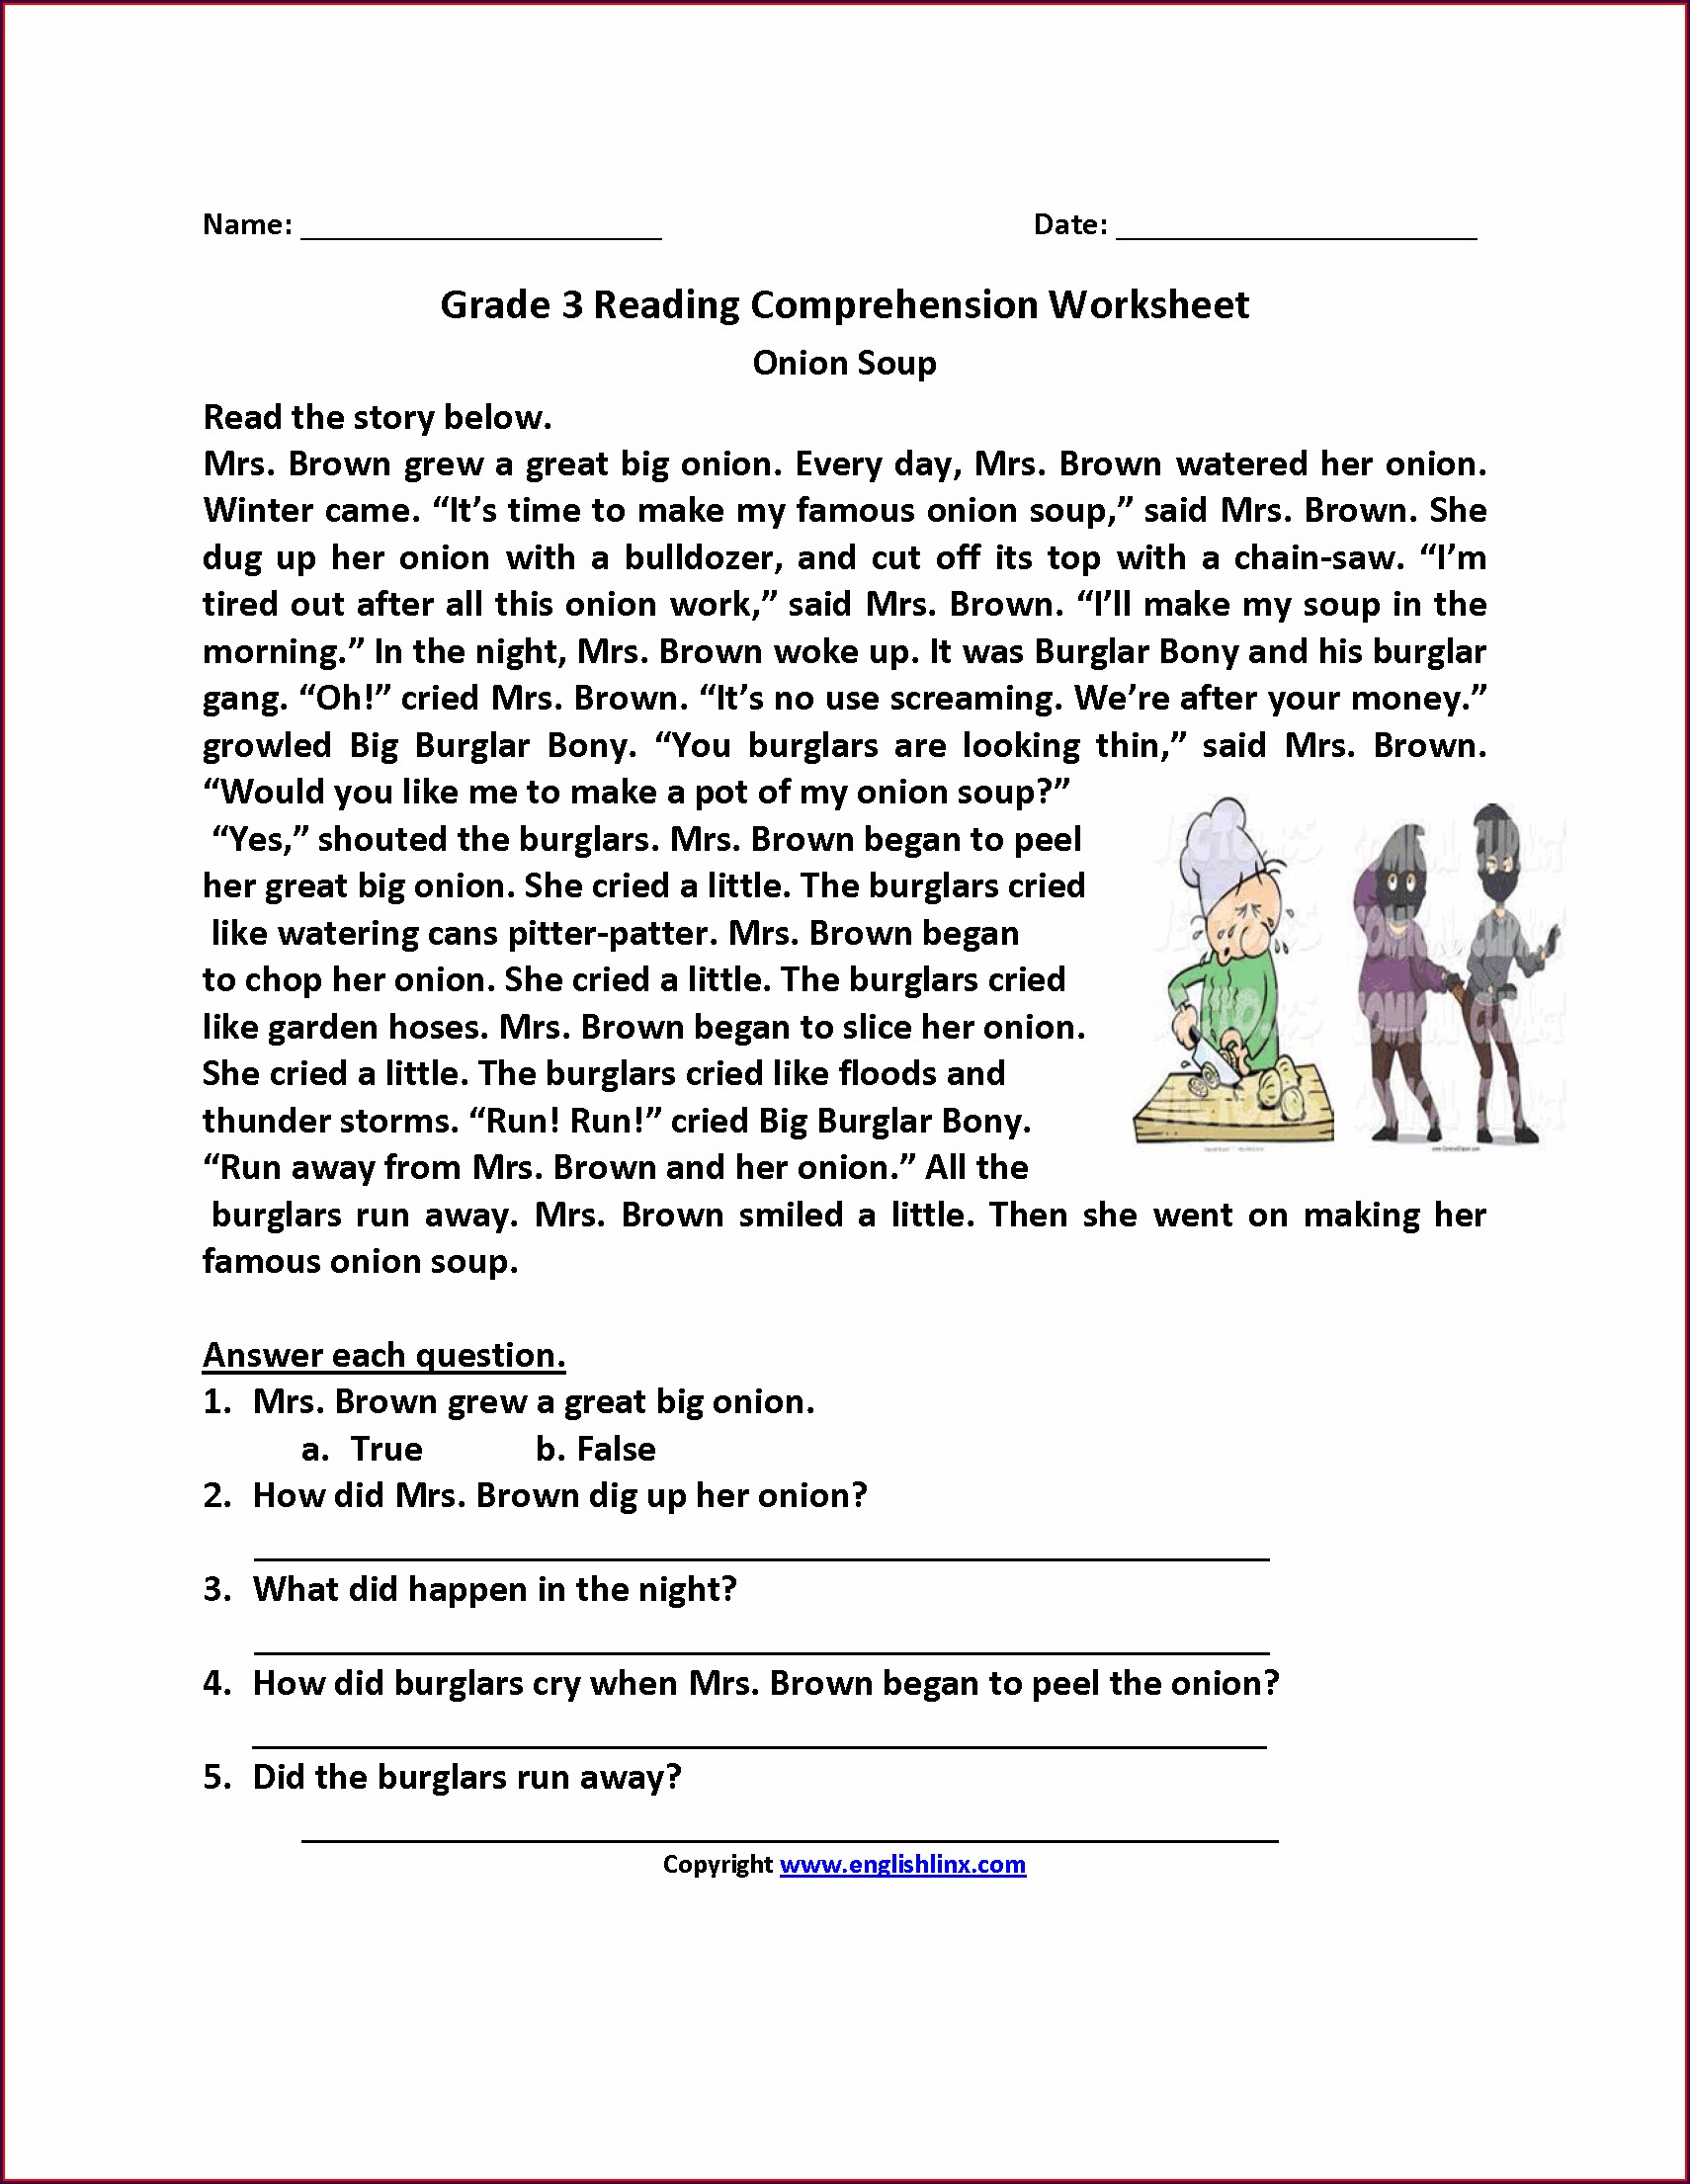 Grade 5 English Comprehension Worksheets South Africa